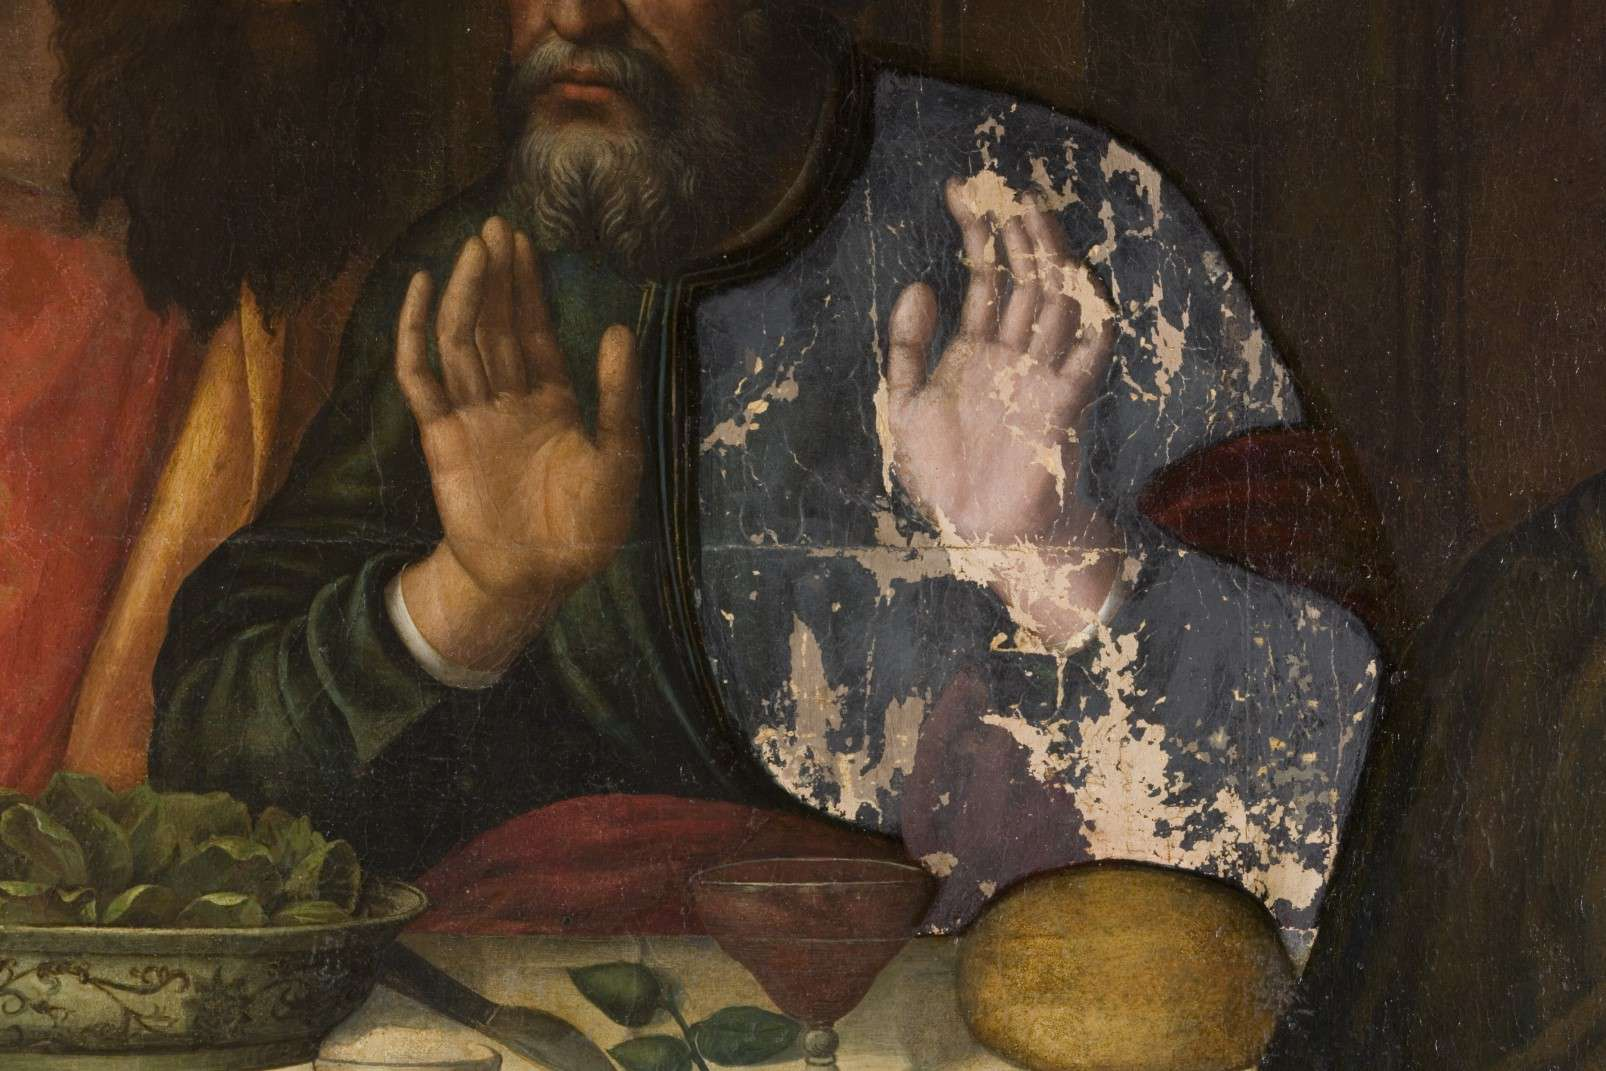 Last Supper by Plautilla Nelli - Adopt an Apostle - Detail of hands, photo by Francesco Cacchiani